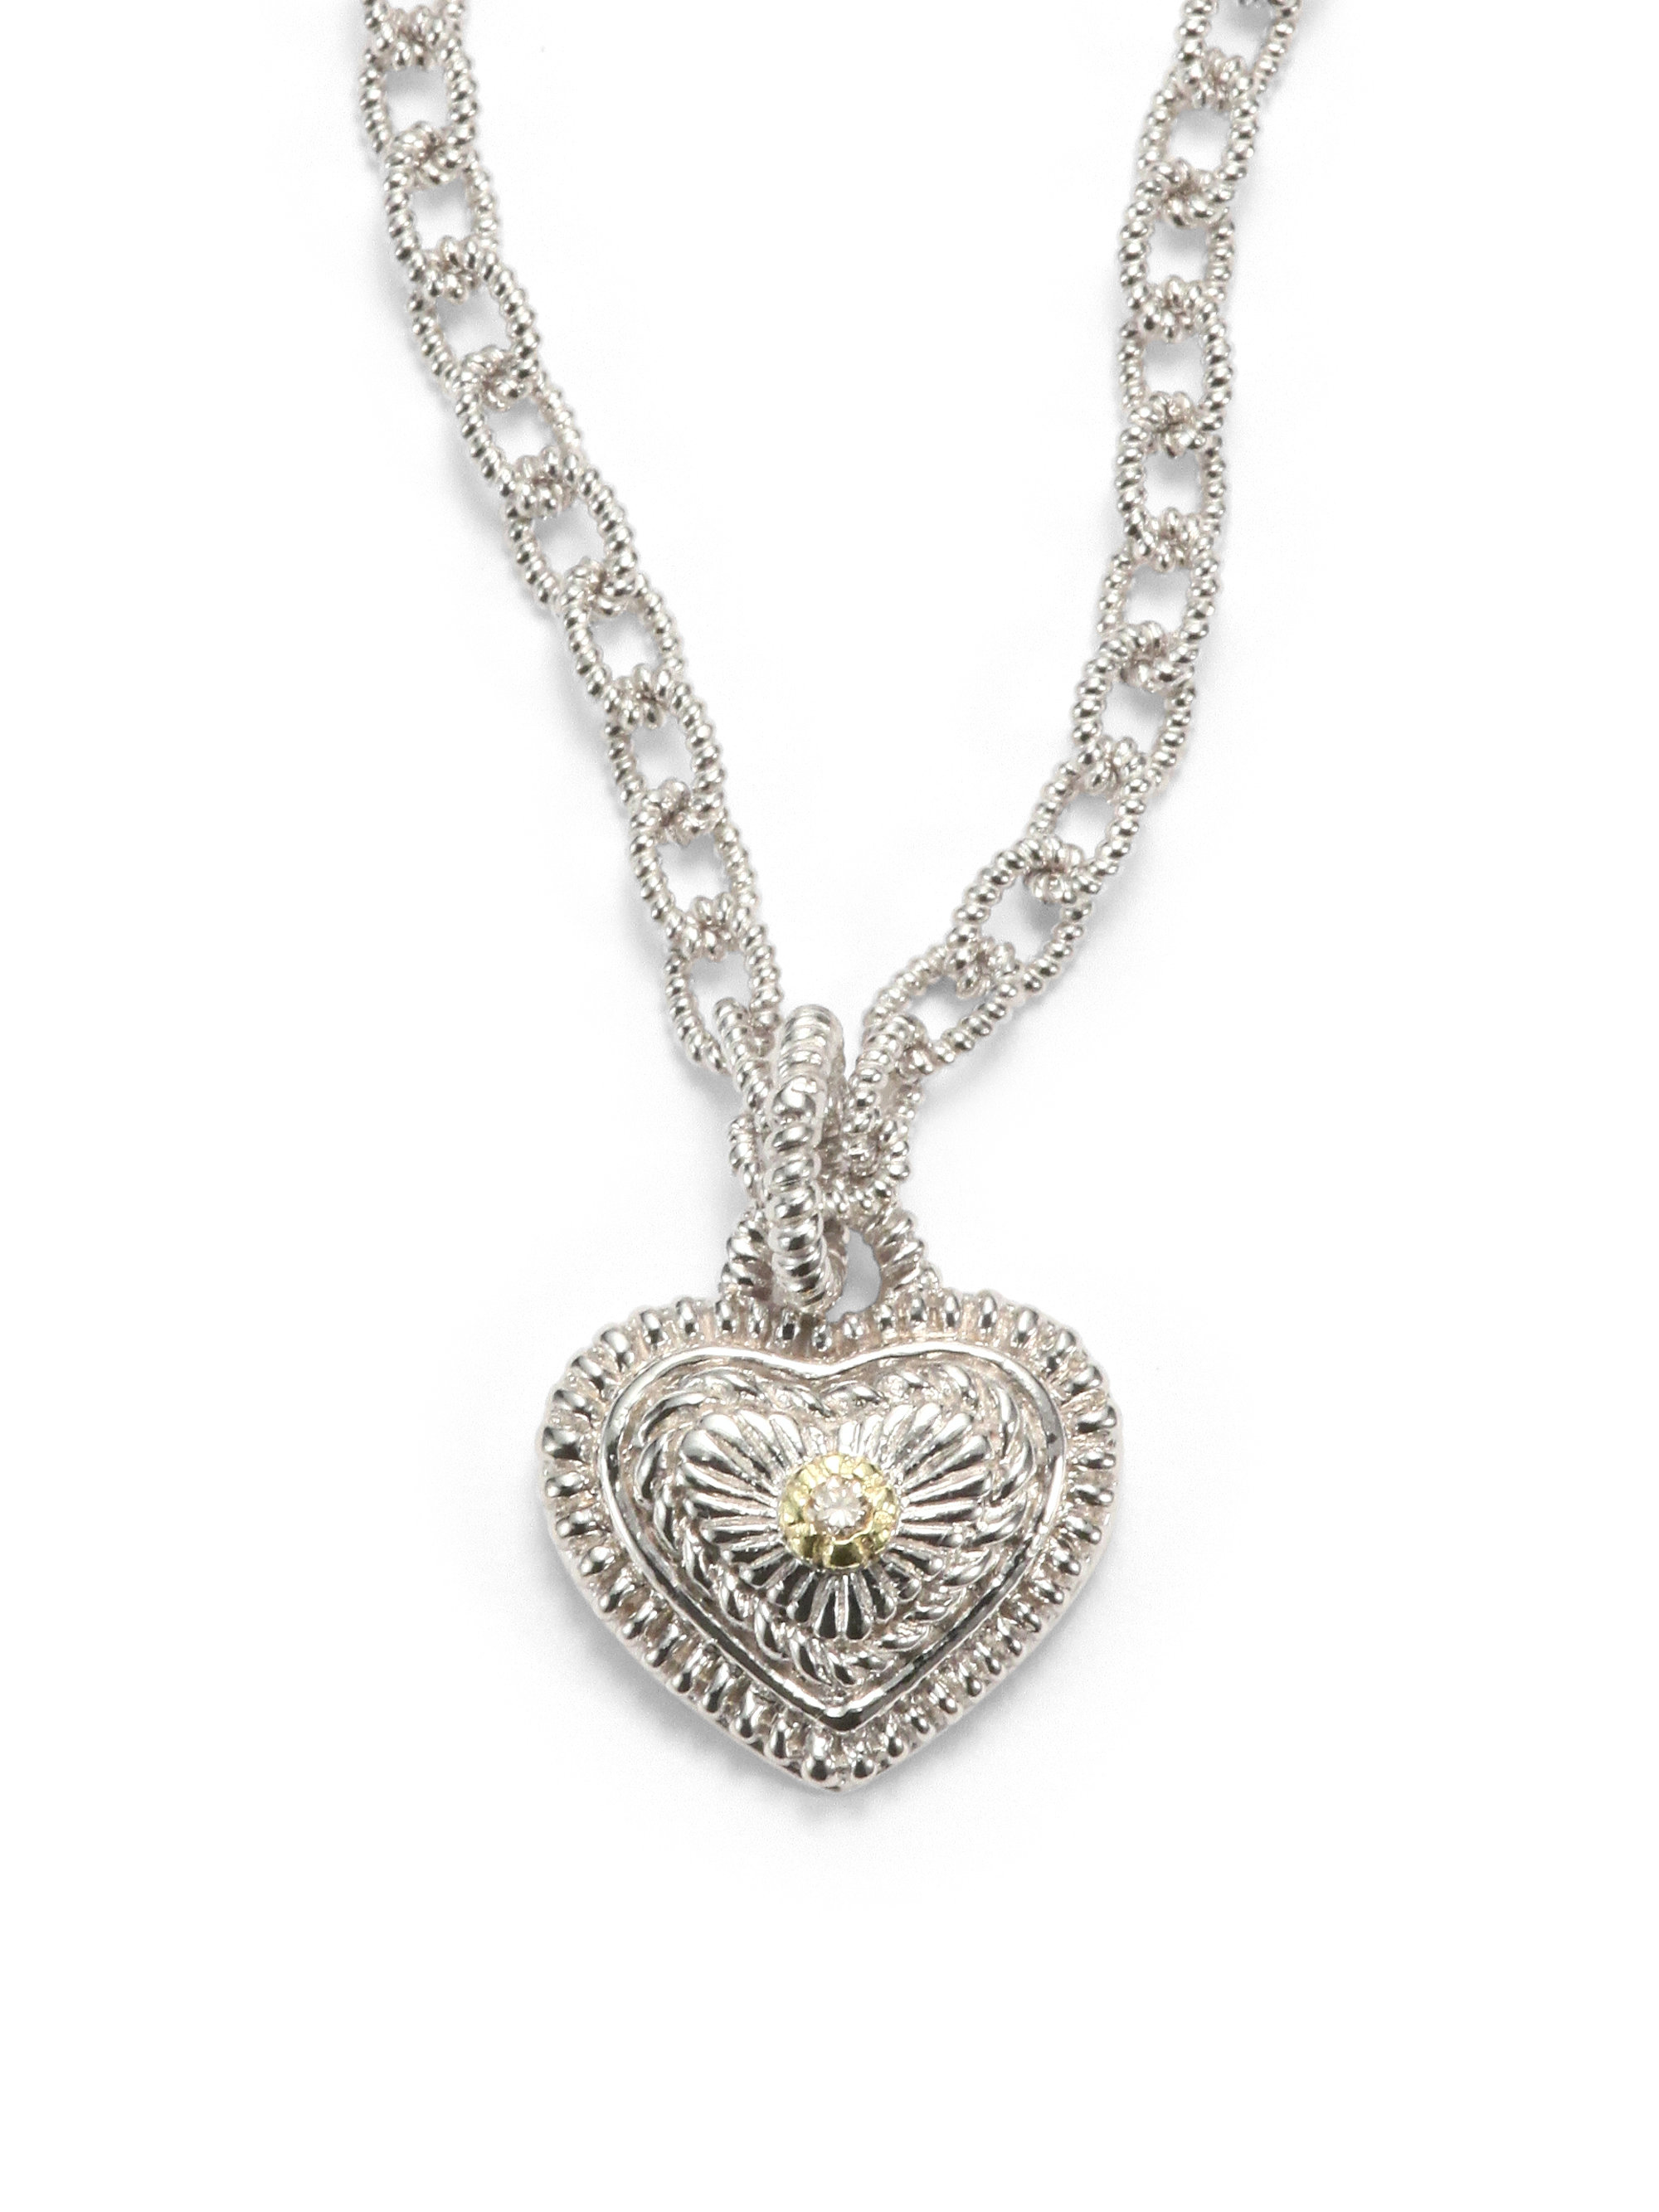 ripka crystal silver shop canary estate white sterling sapphire product judith pendant necklace of image